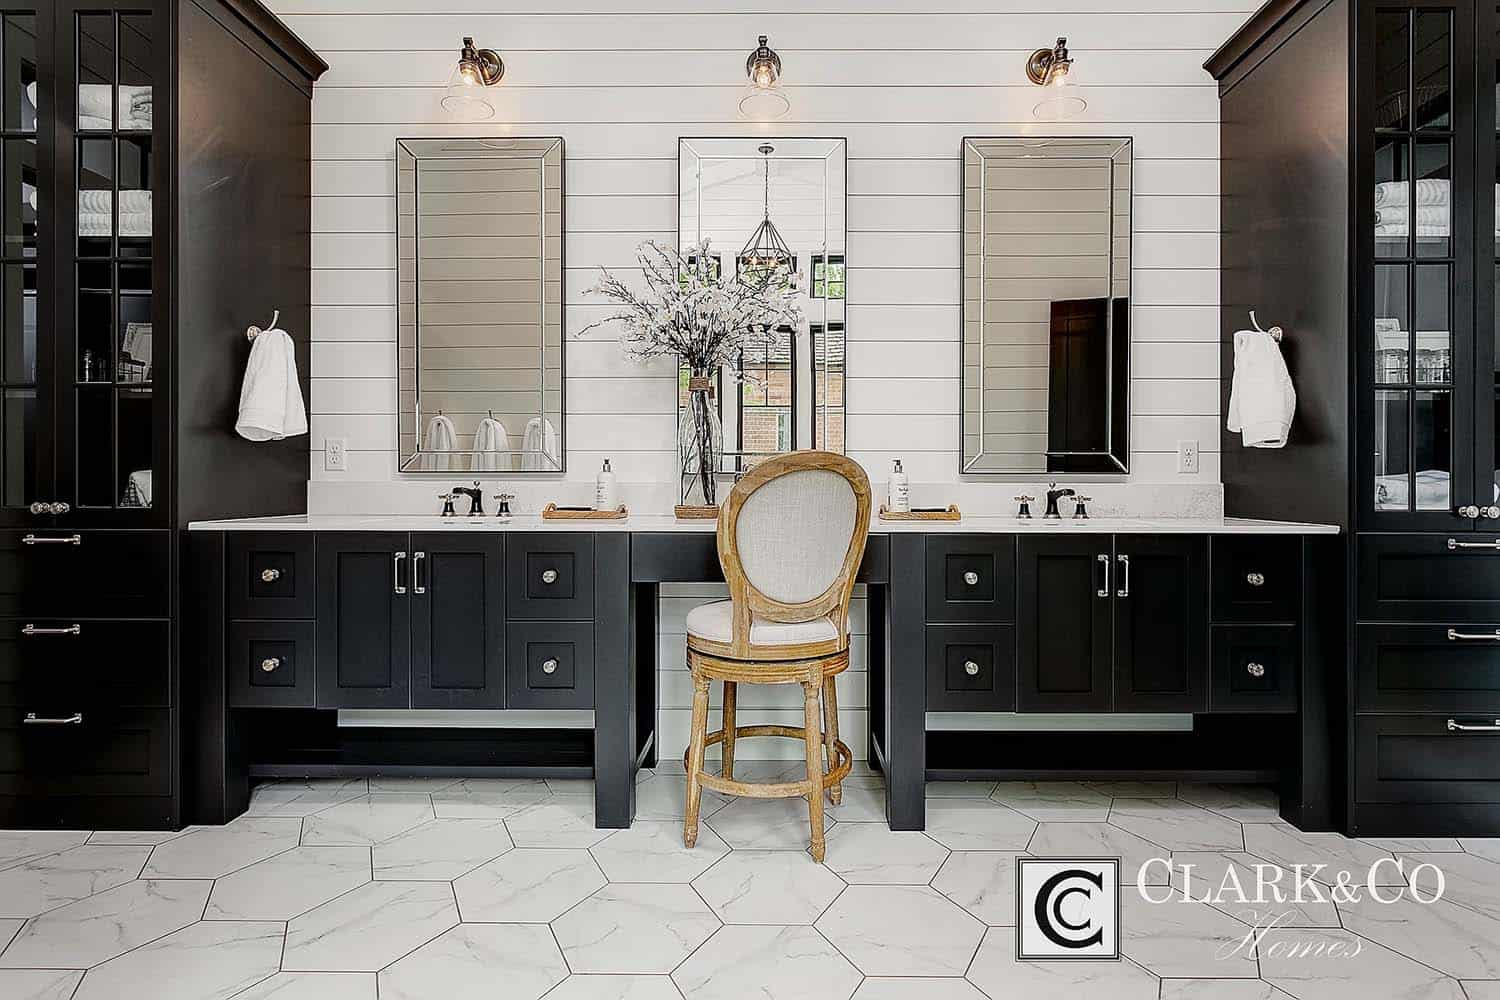 Modern Farmhouse Style-Clark and Co Homes-25-1 Kindesign